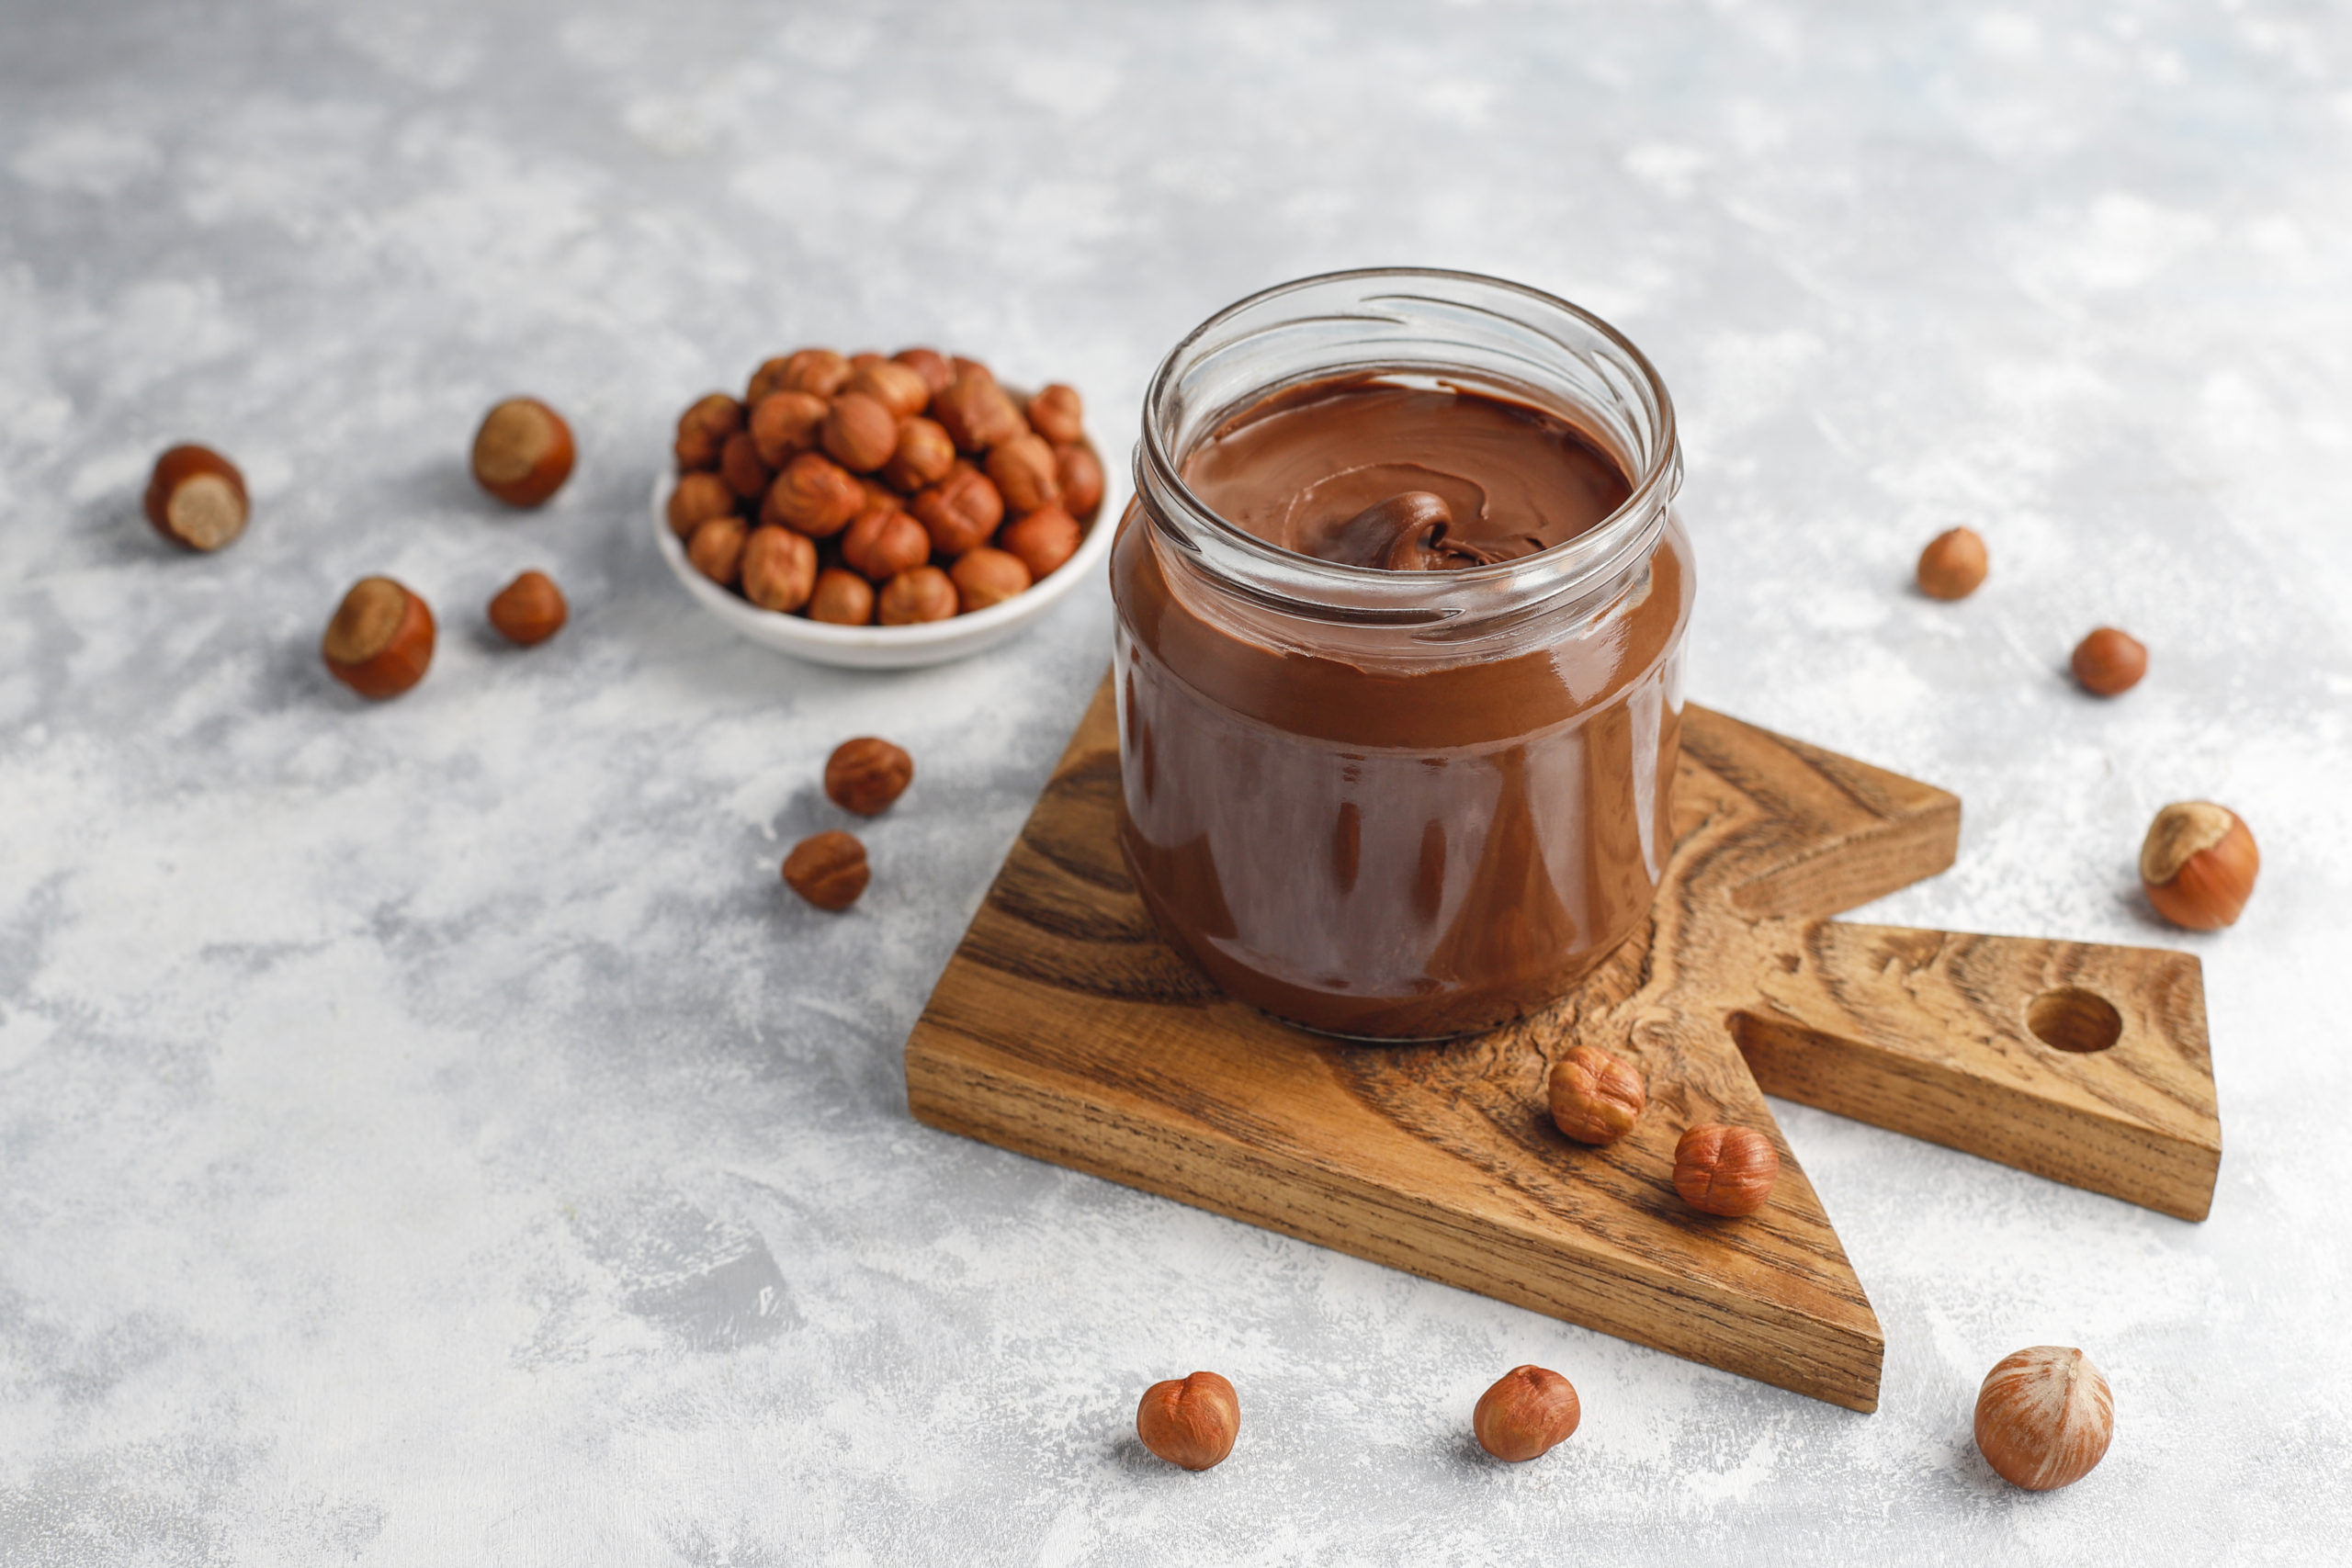 Chocolate spread or nougat cream with hazelnuts in glass jar on